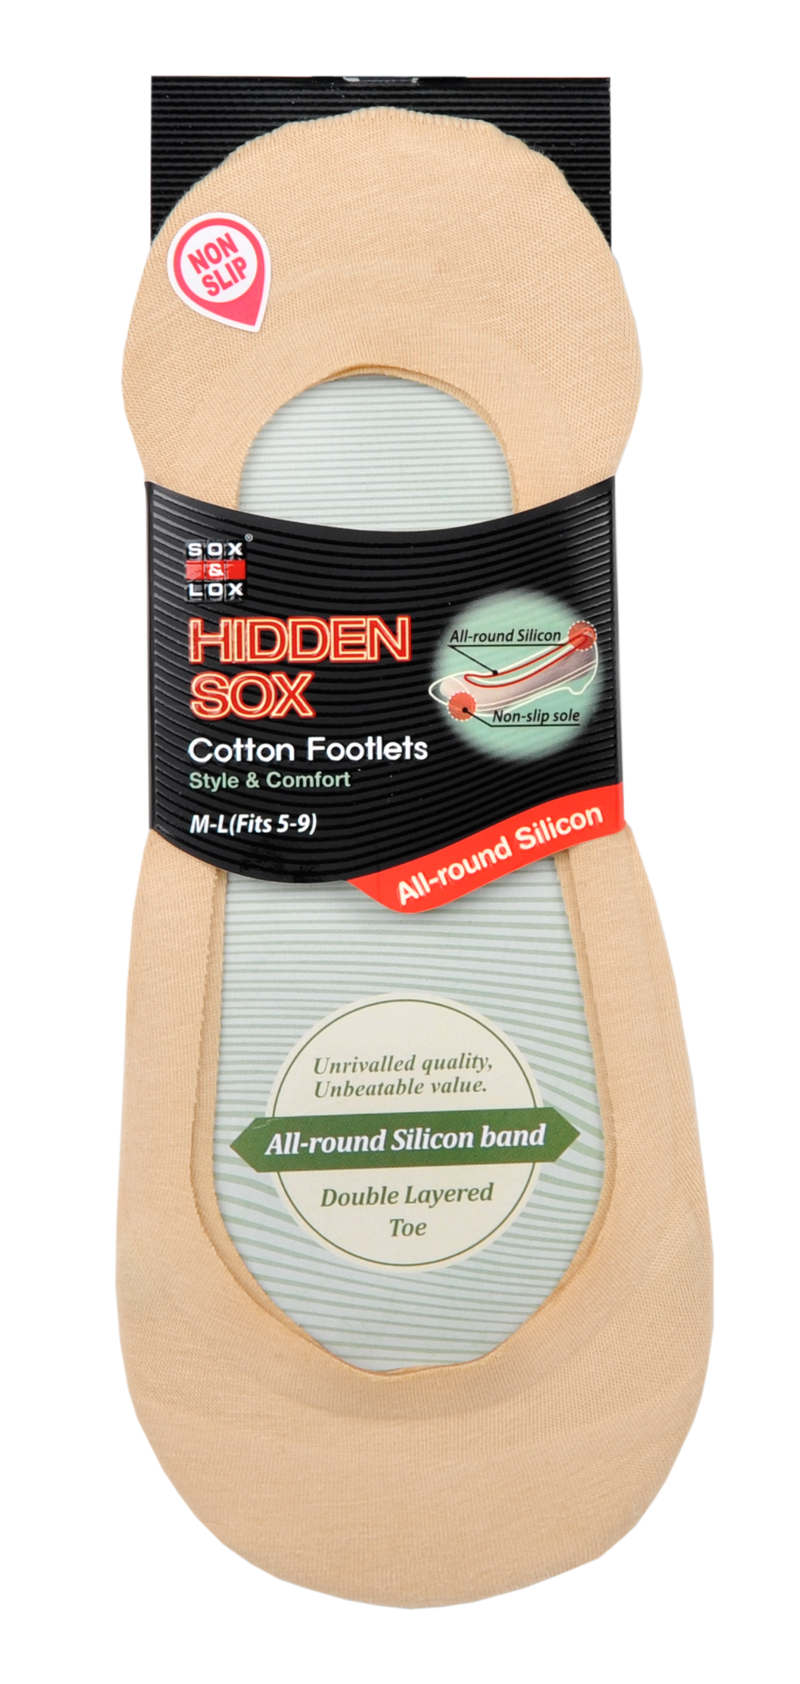 Ladies' No Show Socks With Silicon Band stay hidden below the shoe-line